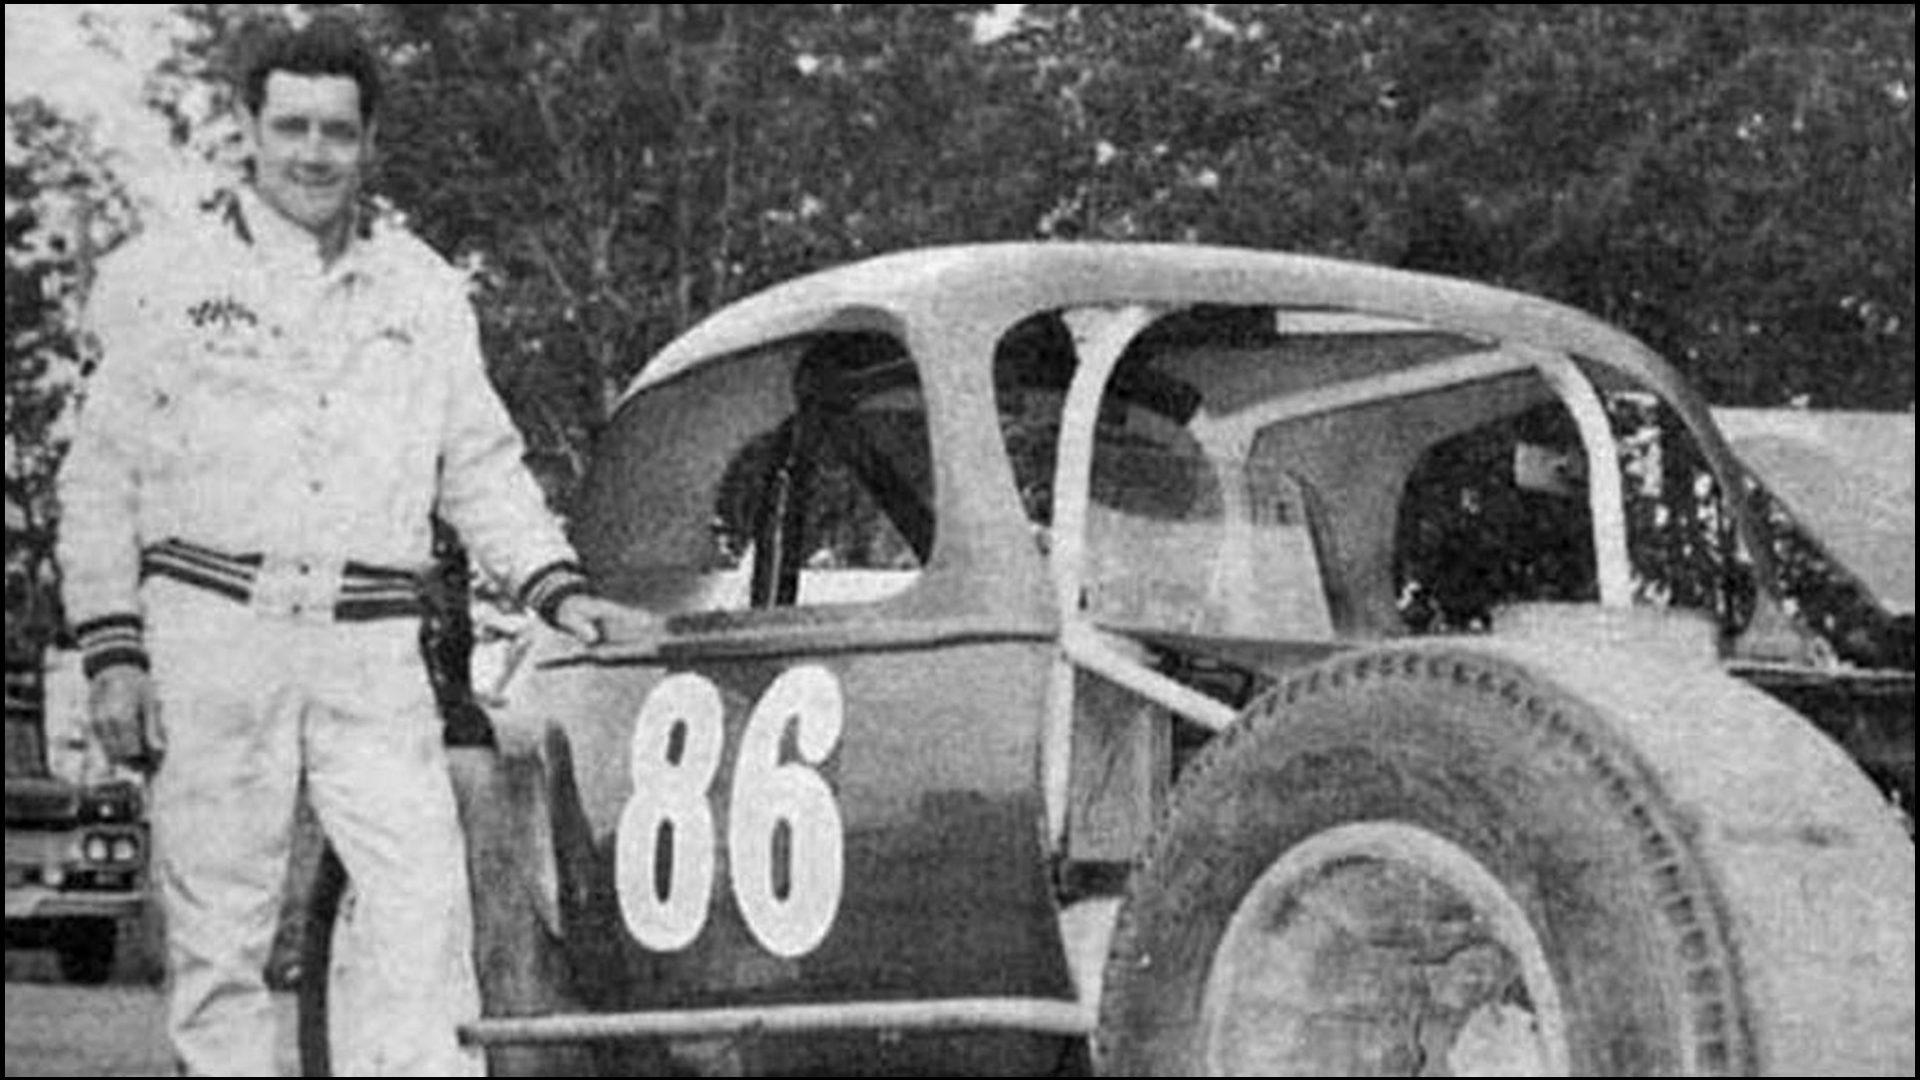 Norm-Mackereth-86-poses-with-the-Sportsman-Class-Modified-he-races-at-Fulton-Speedway.-Courtesy-of-Glen-Tustin